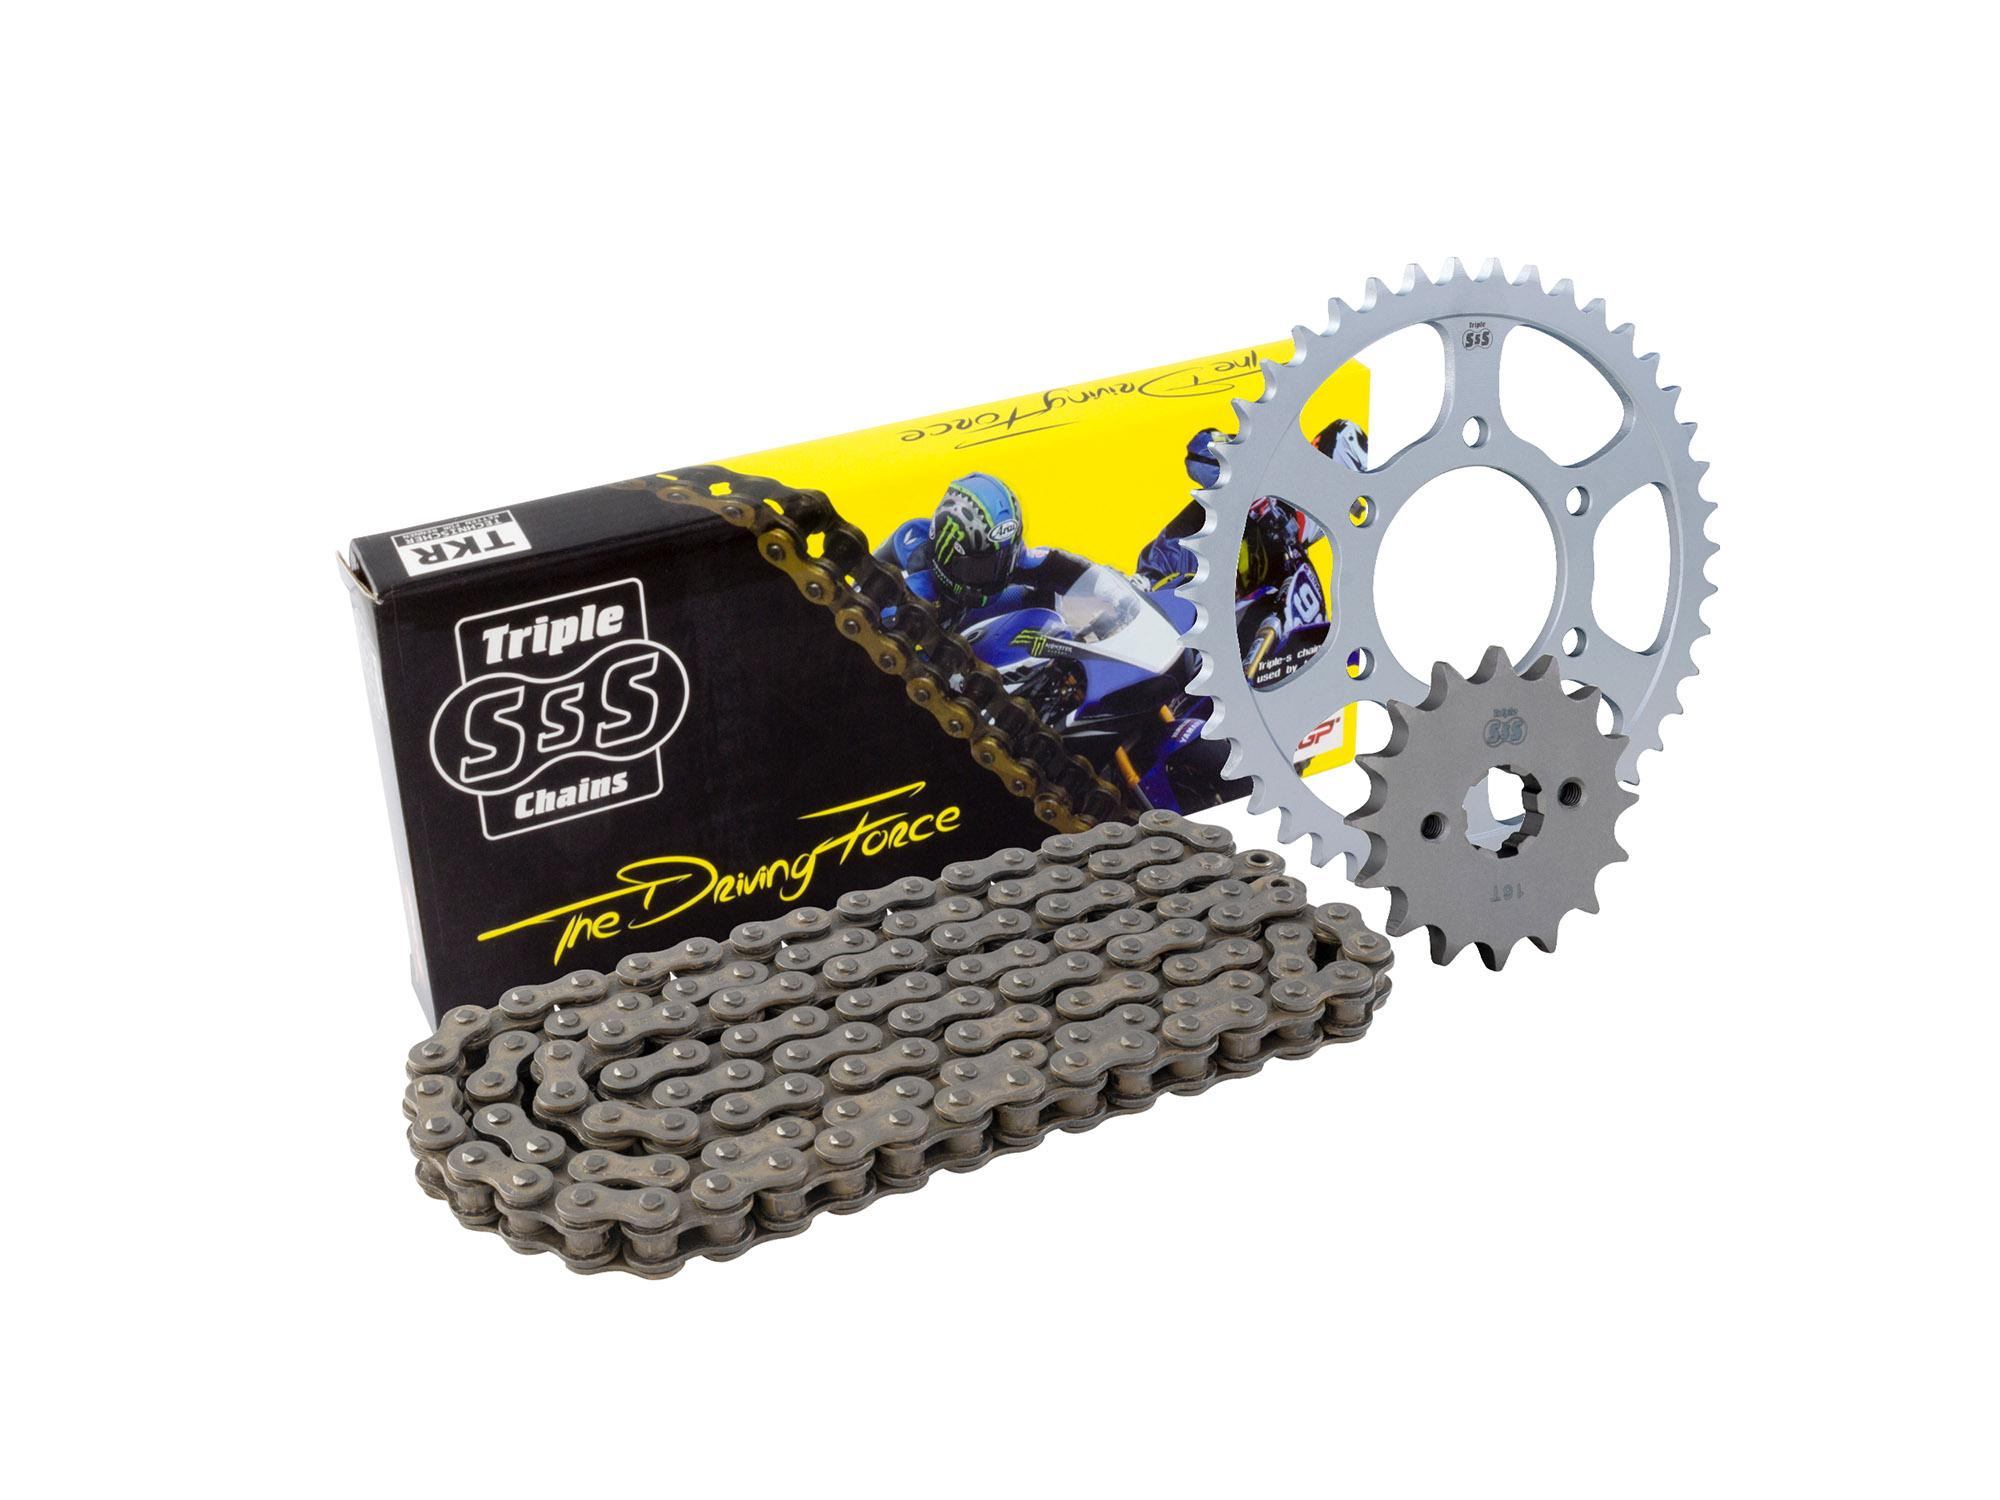 Honda CB250 Night Hawk 99-08 Chain & Sprocket Kit: 14T Front, 33T Rear, HD O-Ring Black Chain 520H 106Link